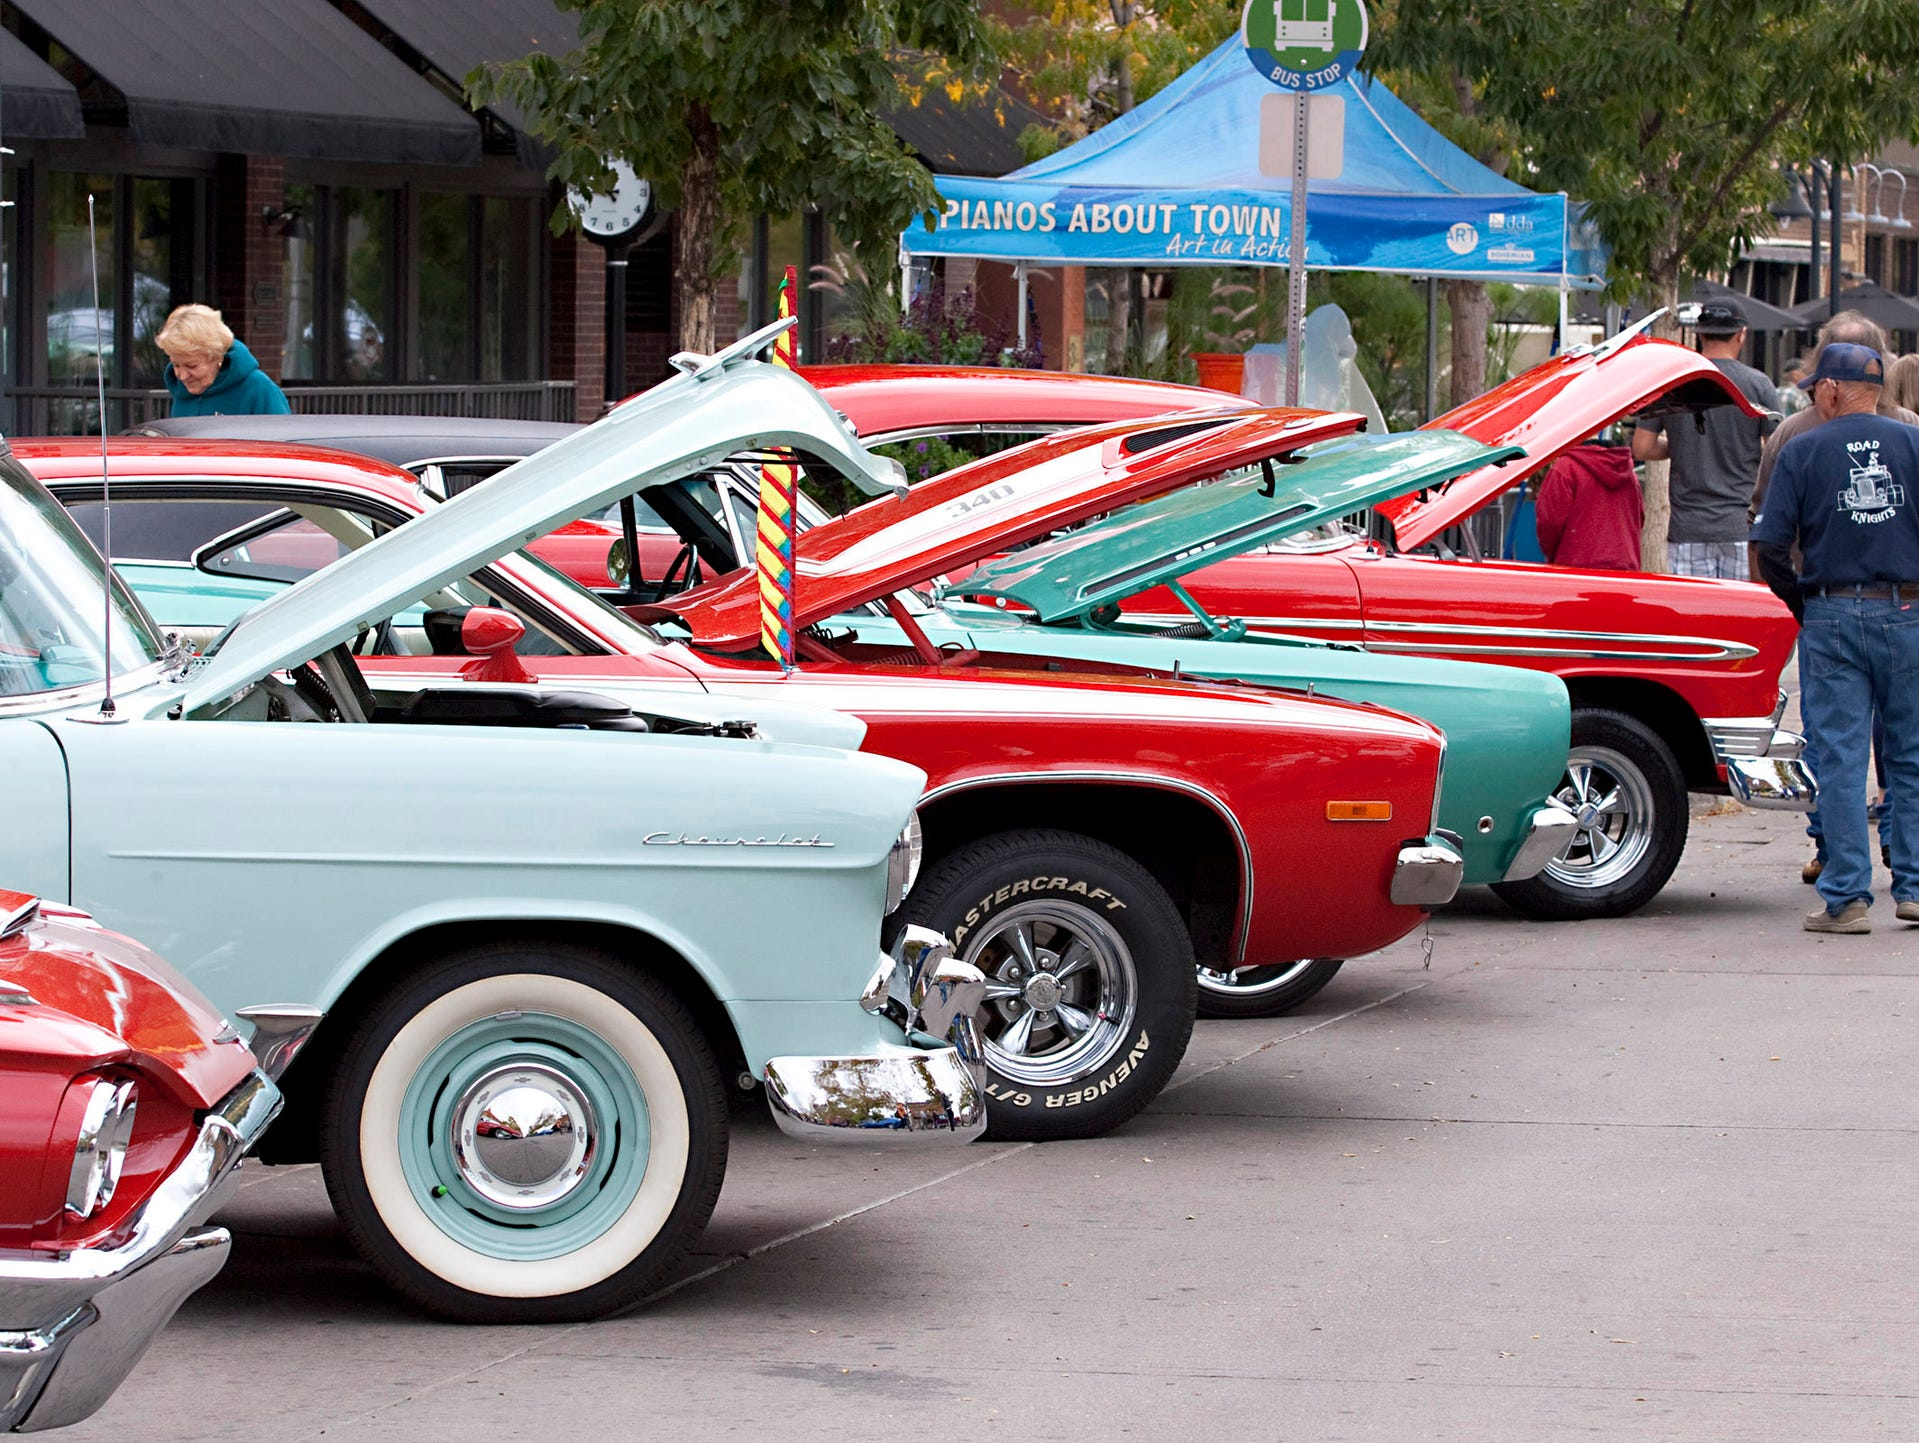 Gallery: Old Town Car Show